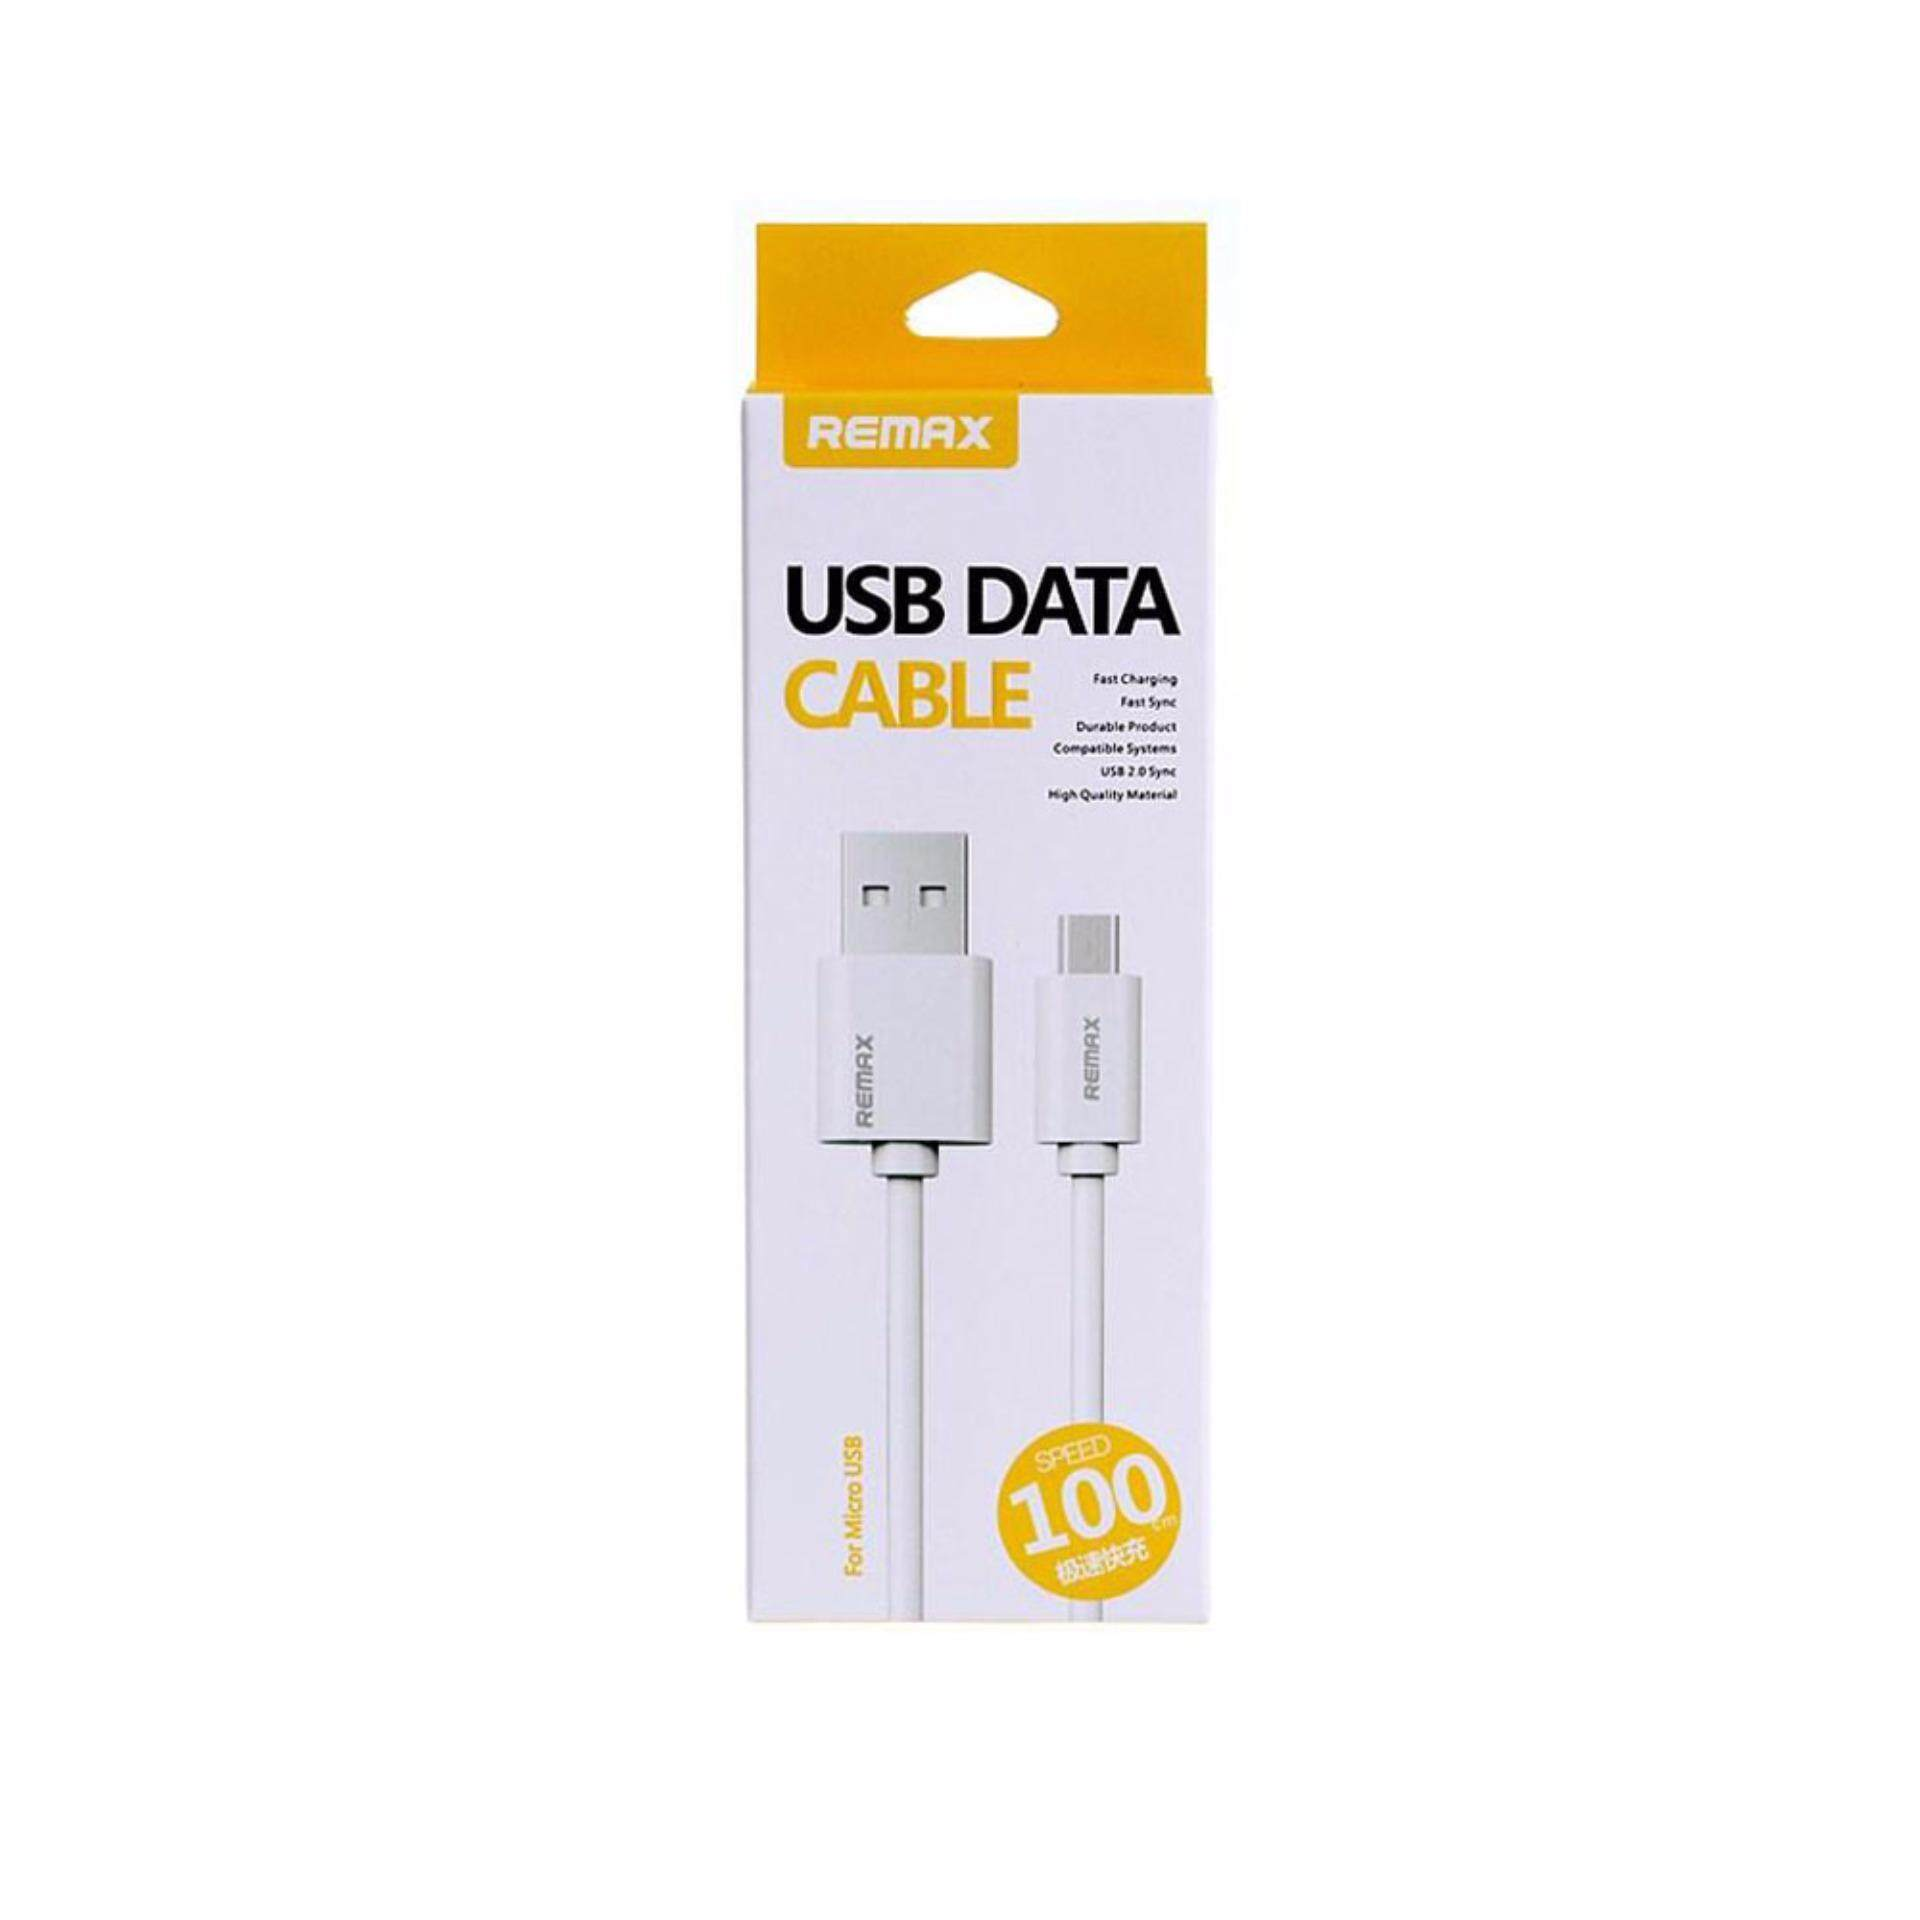 REMAX USB Data Cable For Micro USB (Data) 1M